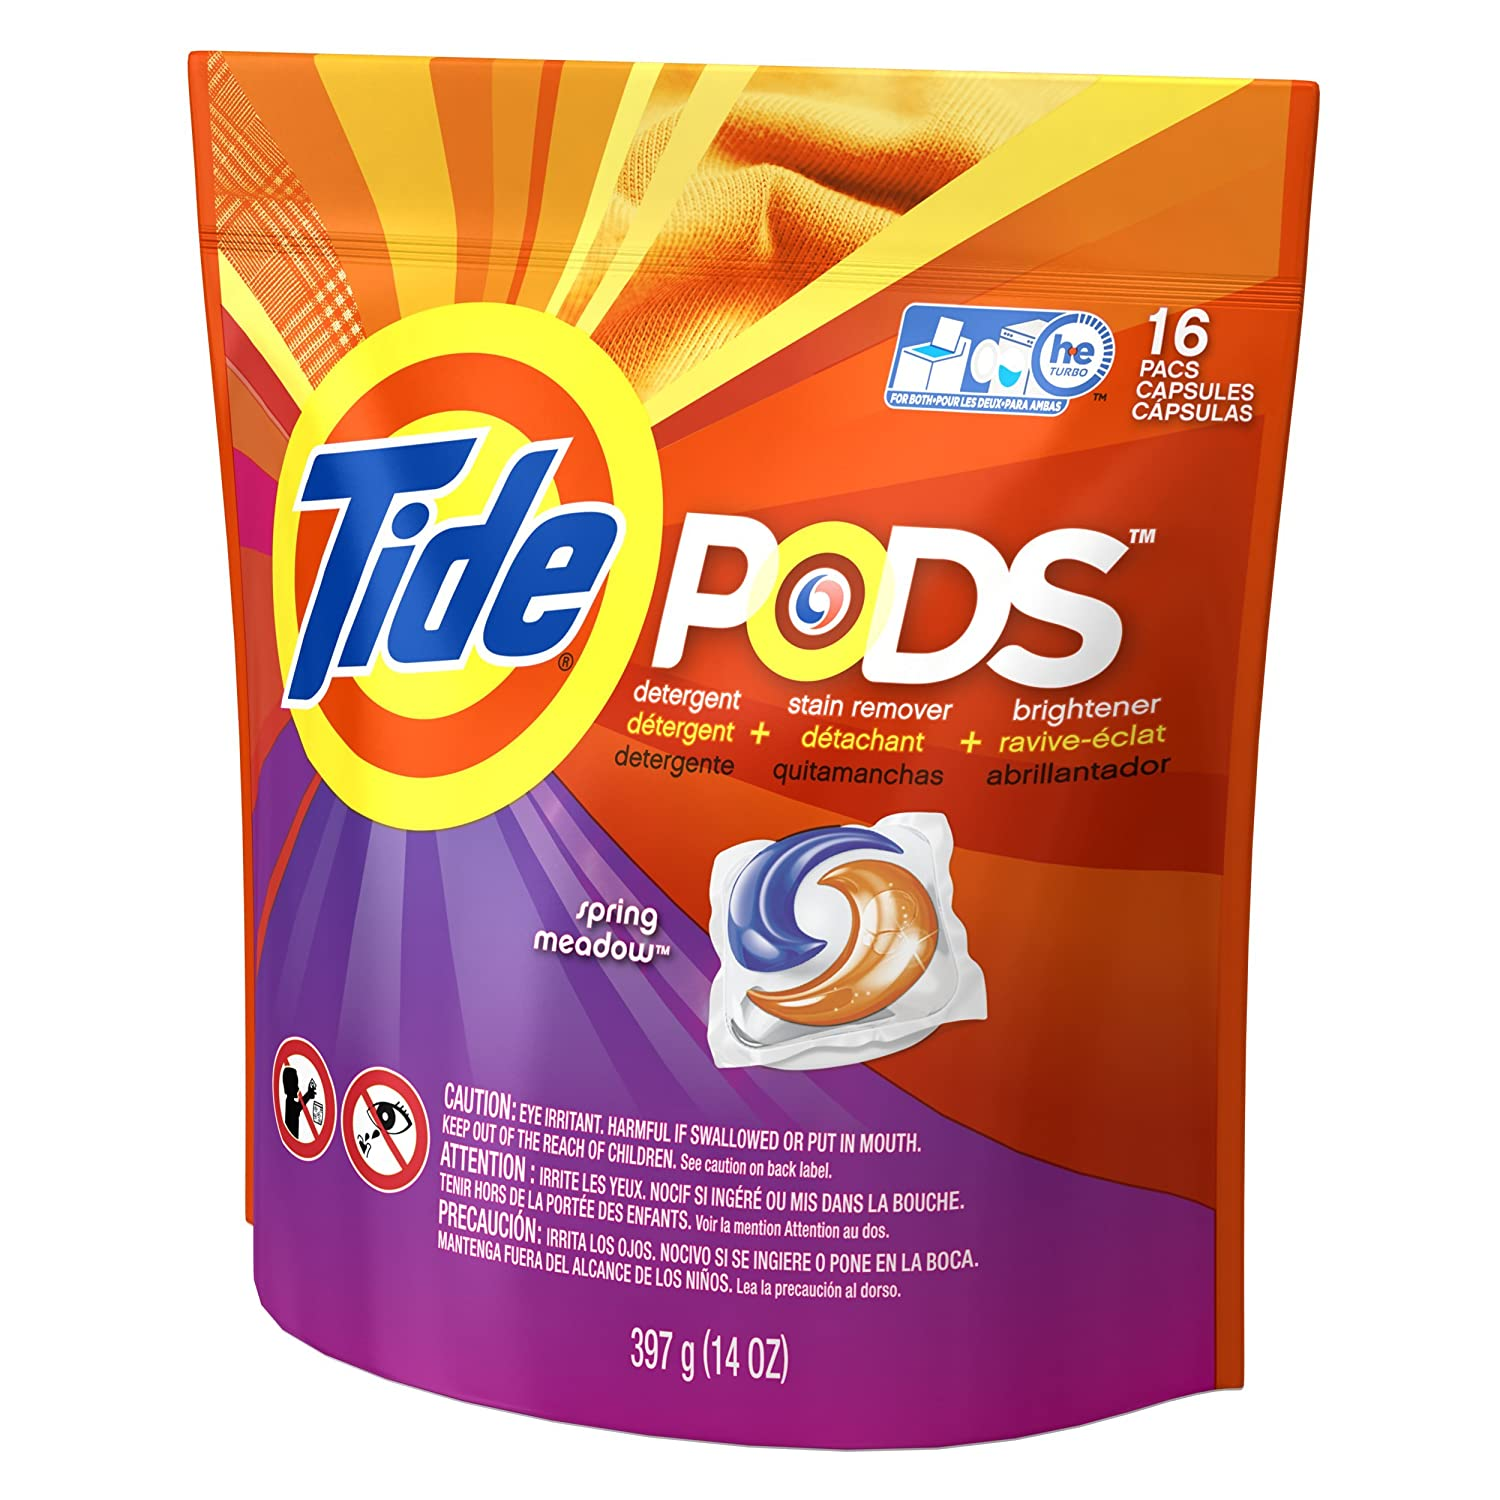 Amazon.com: Tide Laundry Detergent Spring Meadow, 16 Count: Health & Personal Care